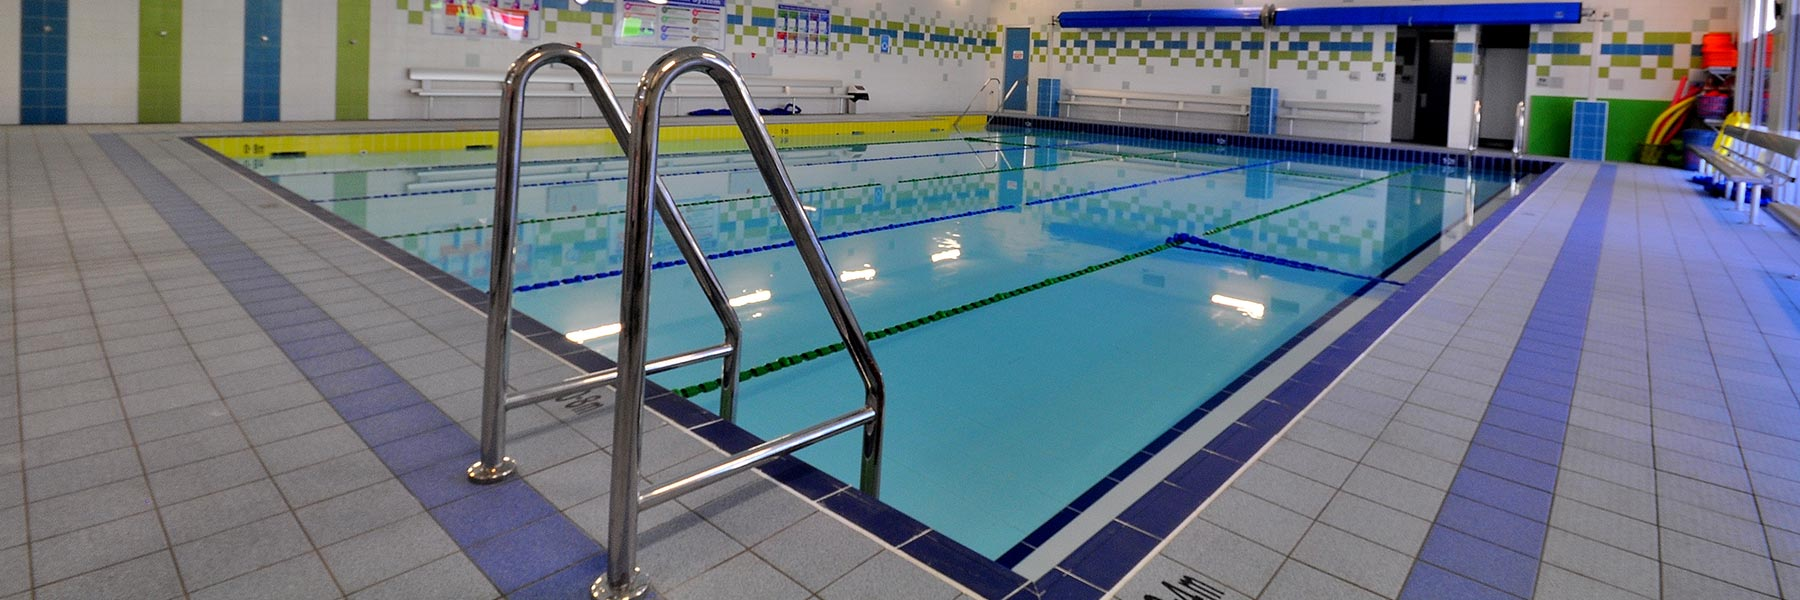 stateswim kwinana pool entry ladder